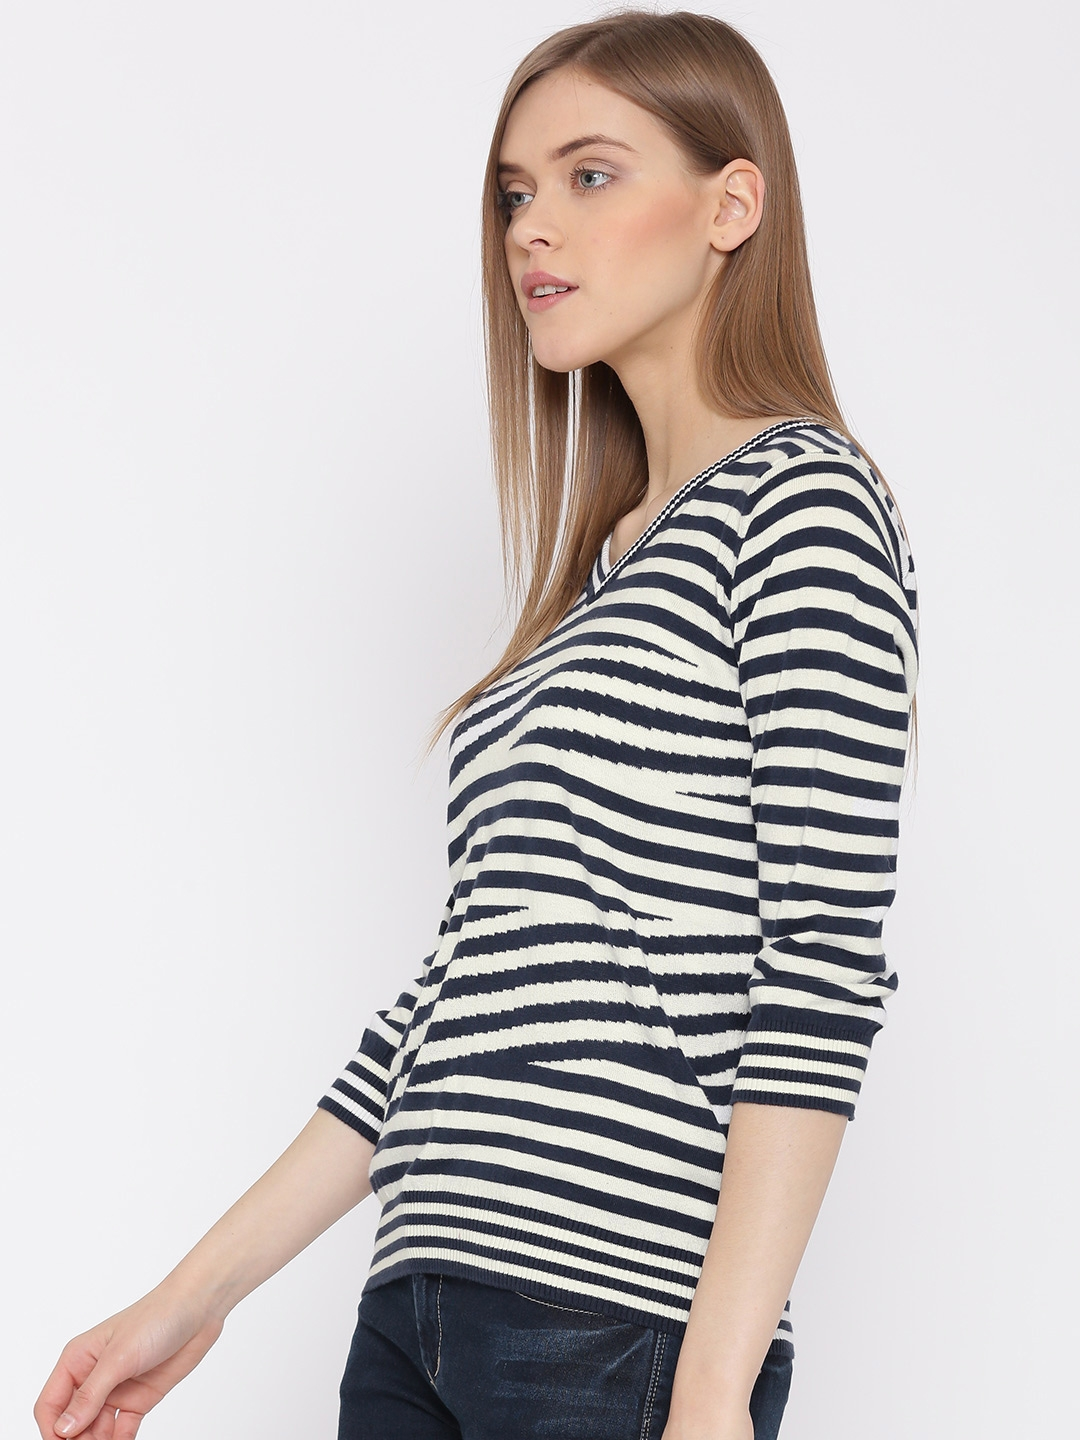 9302e75bd Buy United Colors Of Benetton Women White & Navy Striped Top - Tops ...